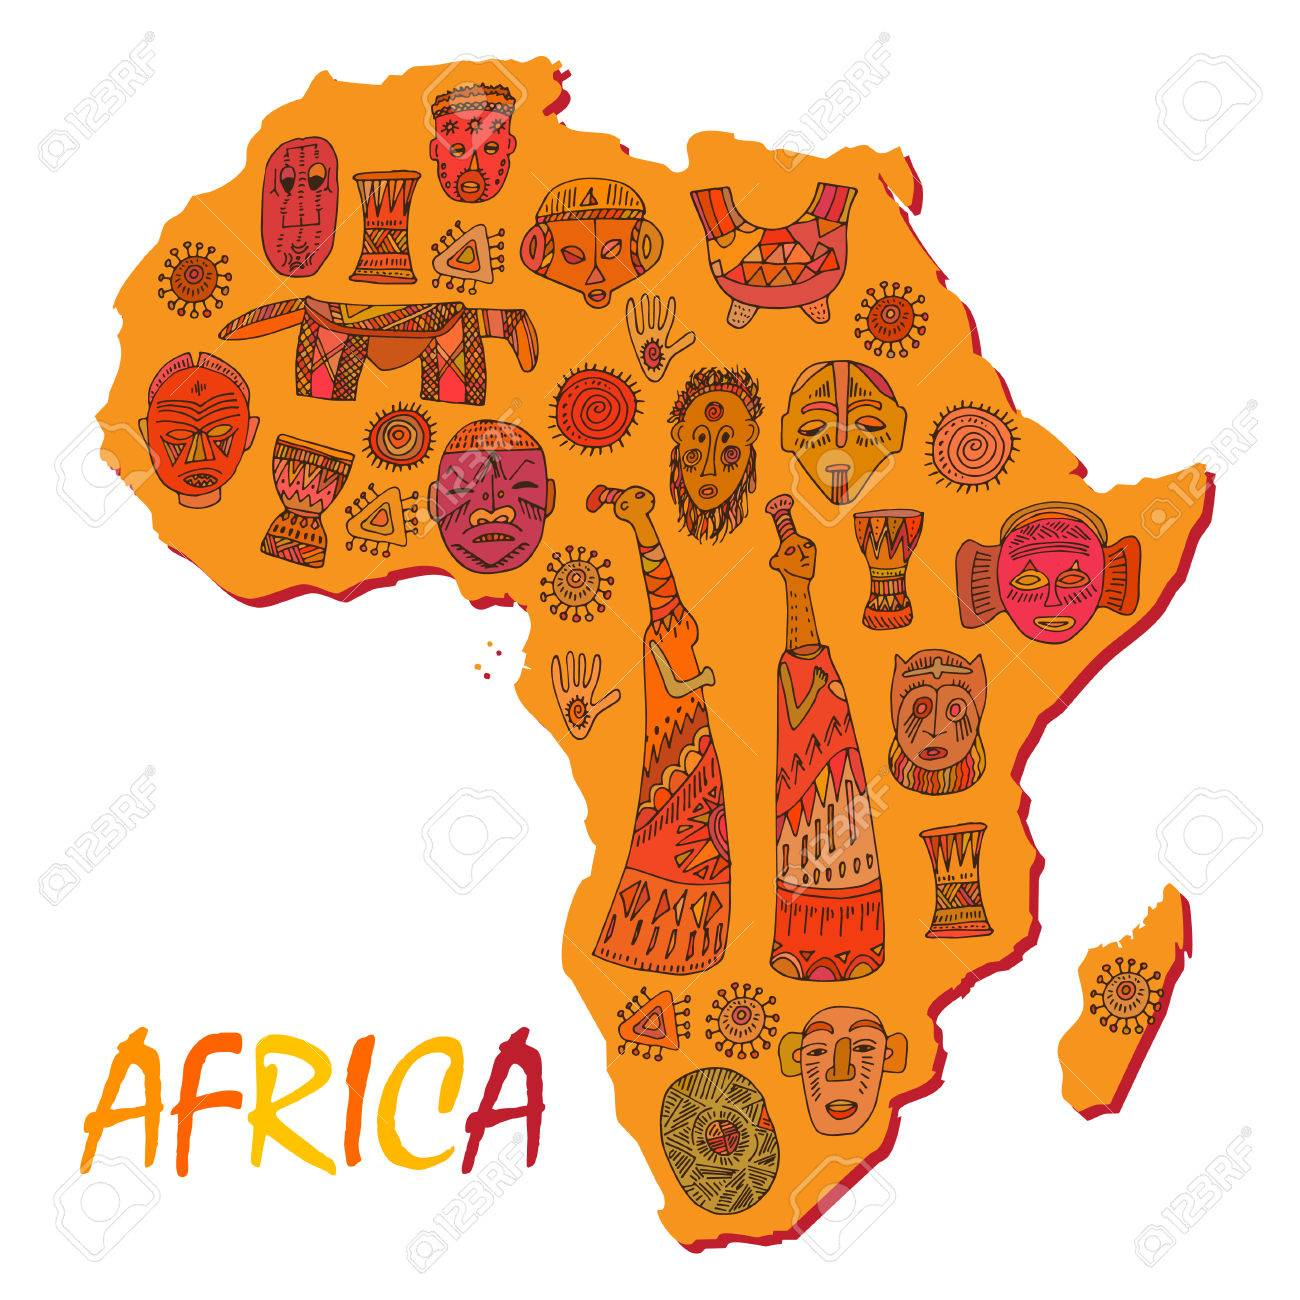 Ancient Africa Map.Africa Map With Different Ancient Symbols And Signs